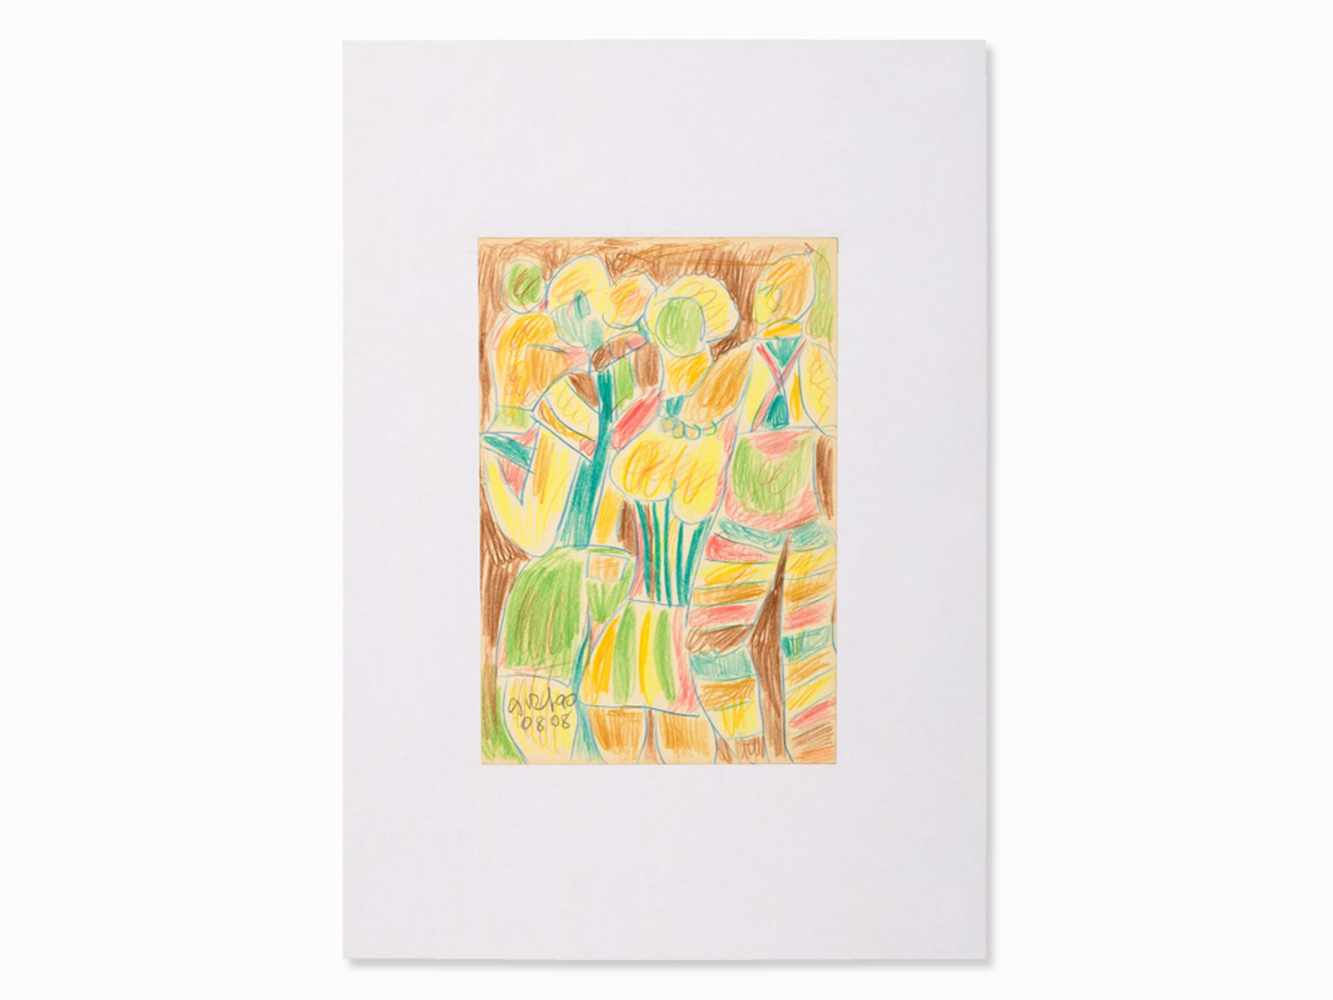 Miklos Németh, Drawing, Colorful Figures, Hungary, 2008<